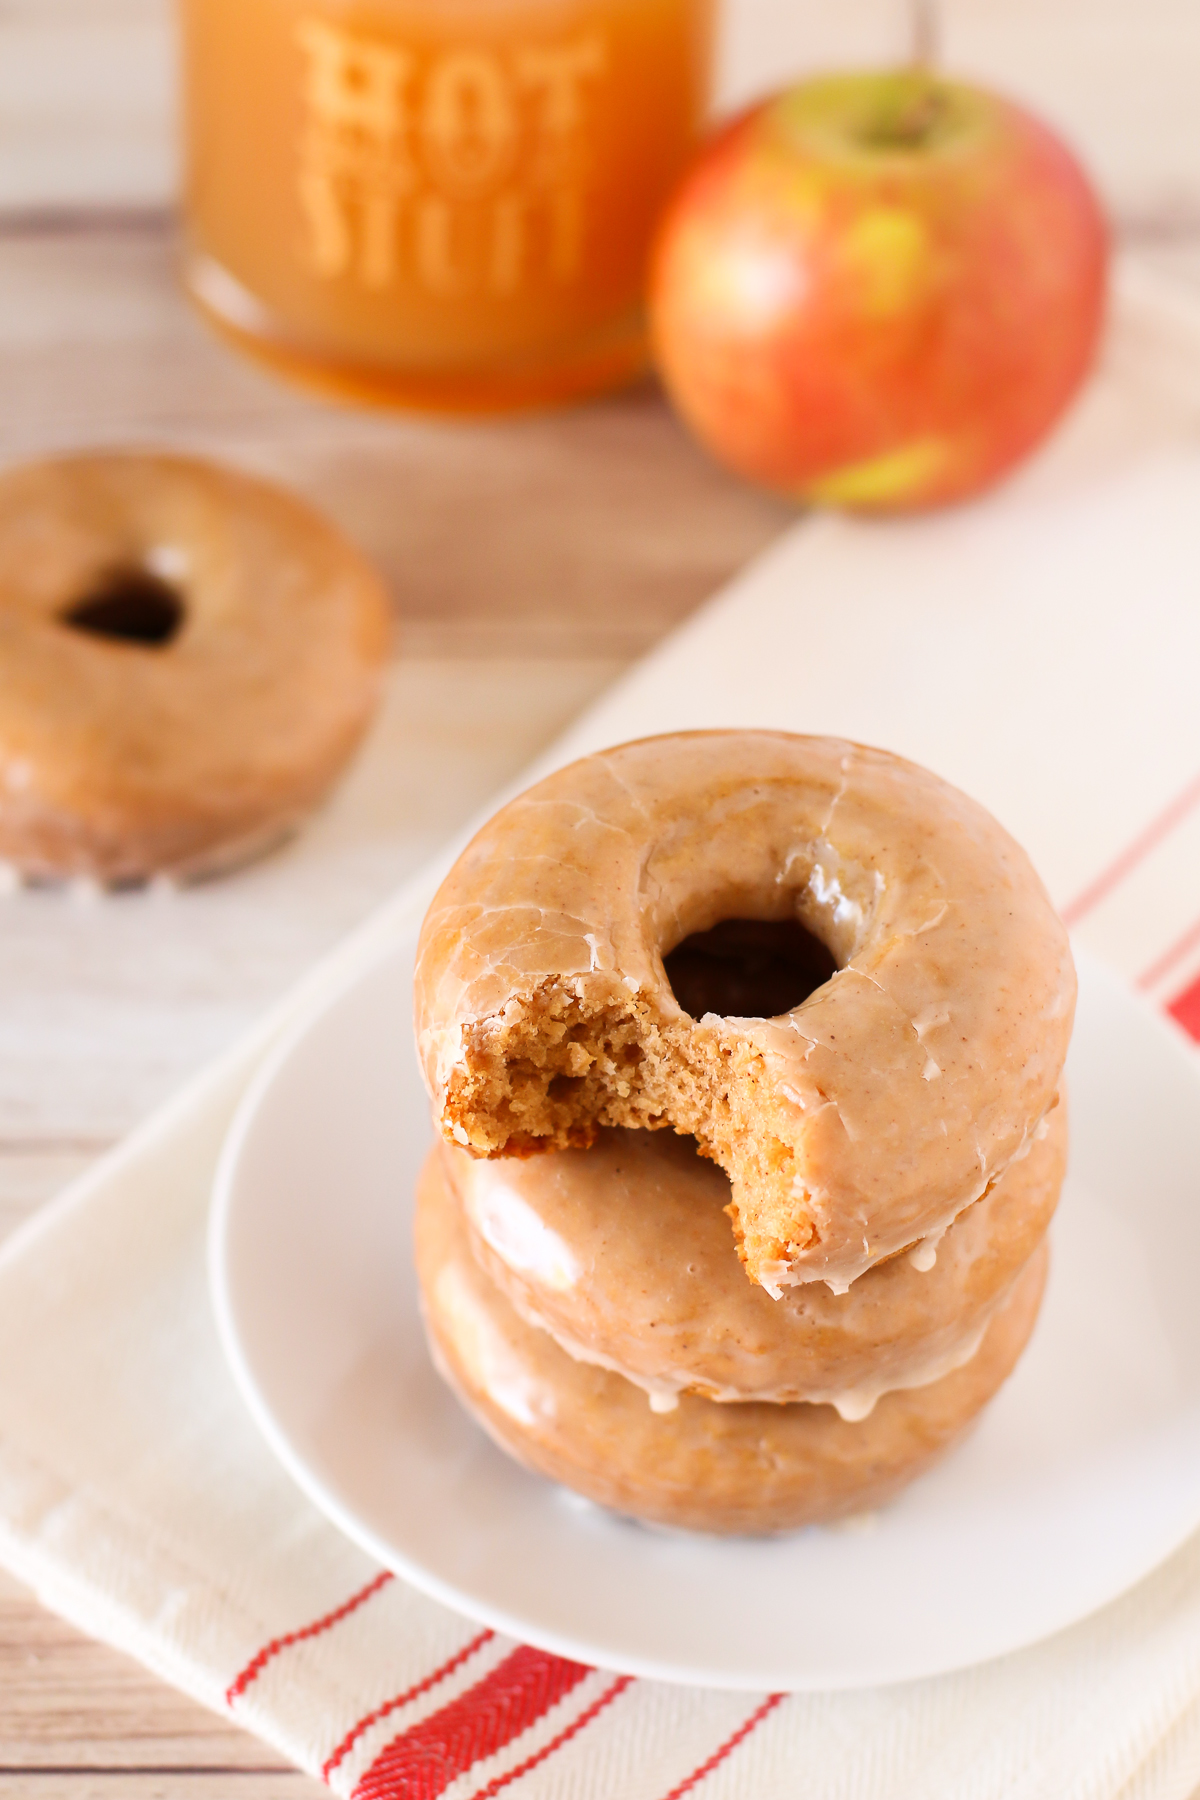 Gluten Free Vegan Baked Apple Cider Donuts. Cake-like, baked apple cider donuts with a simple cinnamon glaze. This recipe is fall-tastic!